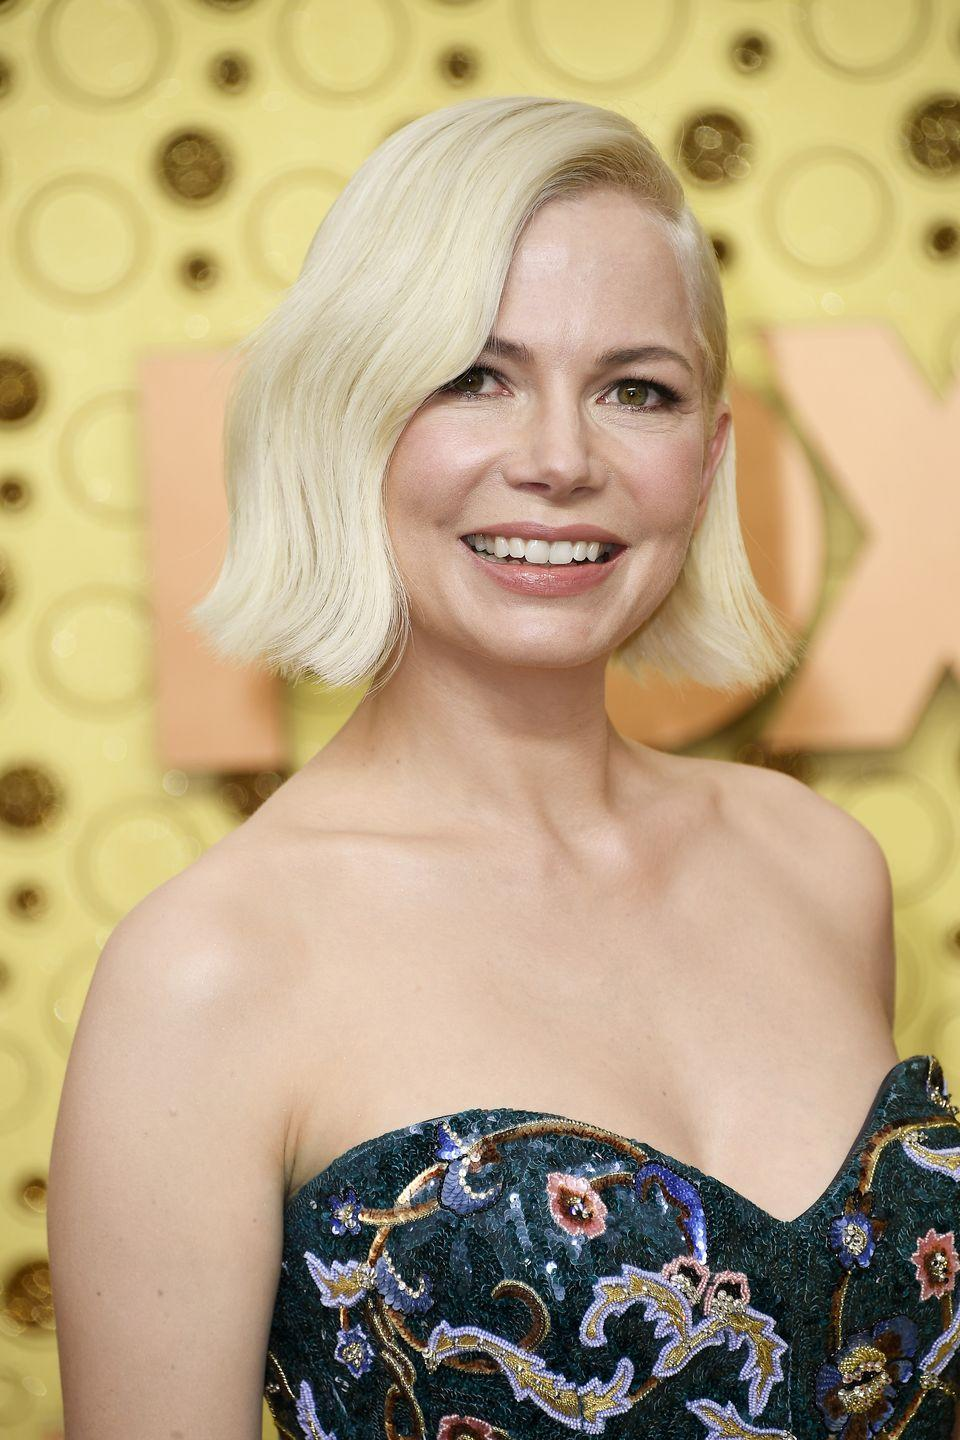 """<p>""""<a href=""""https://www.elle.com/uk/life-and-culture/culture/articles/a33628/michelle-williams-opens-up-about-heath-ledger-and-single-motherhood/"""" rel=""""nofollow noopener"""" target=""""_blank"""" data-ylk=""""slk:When you've"""" class=""""link rapid-noclick-resp"""">When you've</a> been a parent for 11 years and you've done it alone, you don't have romantic ideals, because you have a practical understanding that you can do it by yourself.""""</p>"""